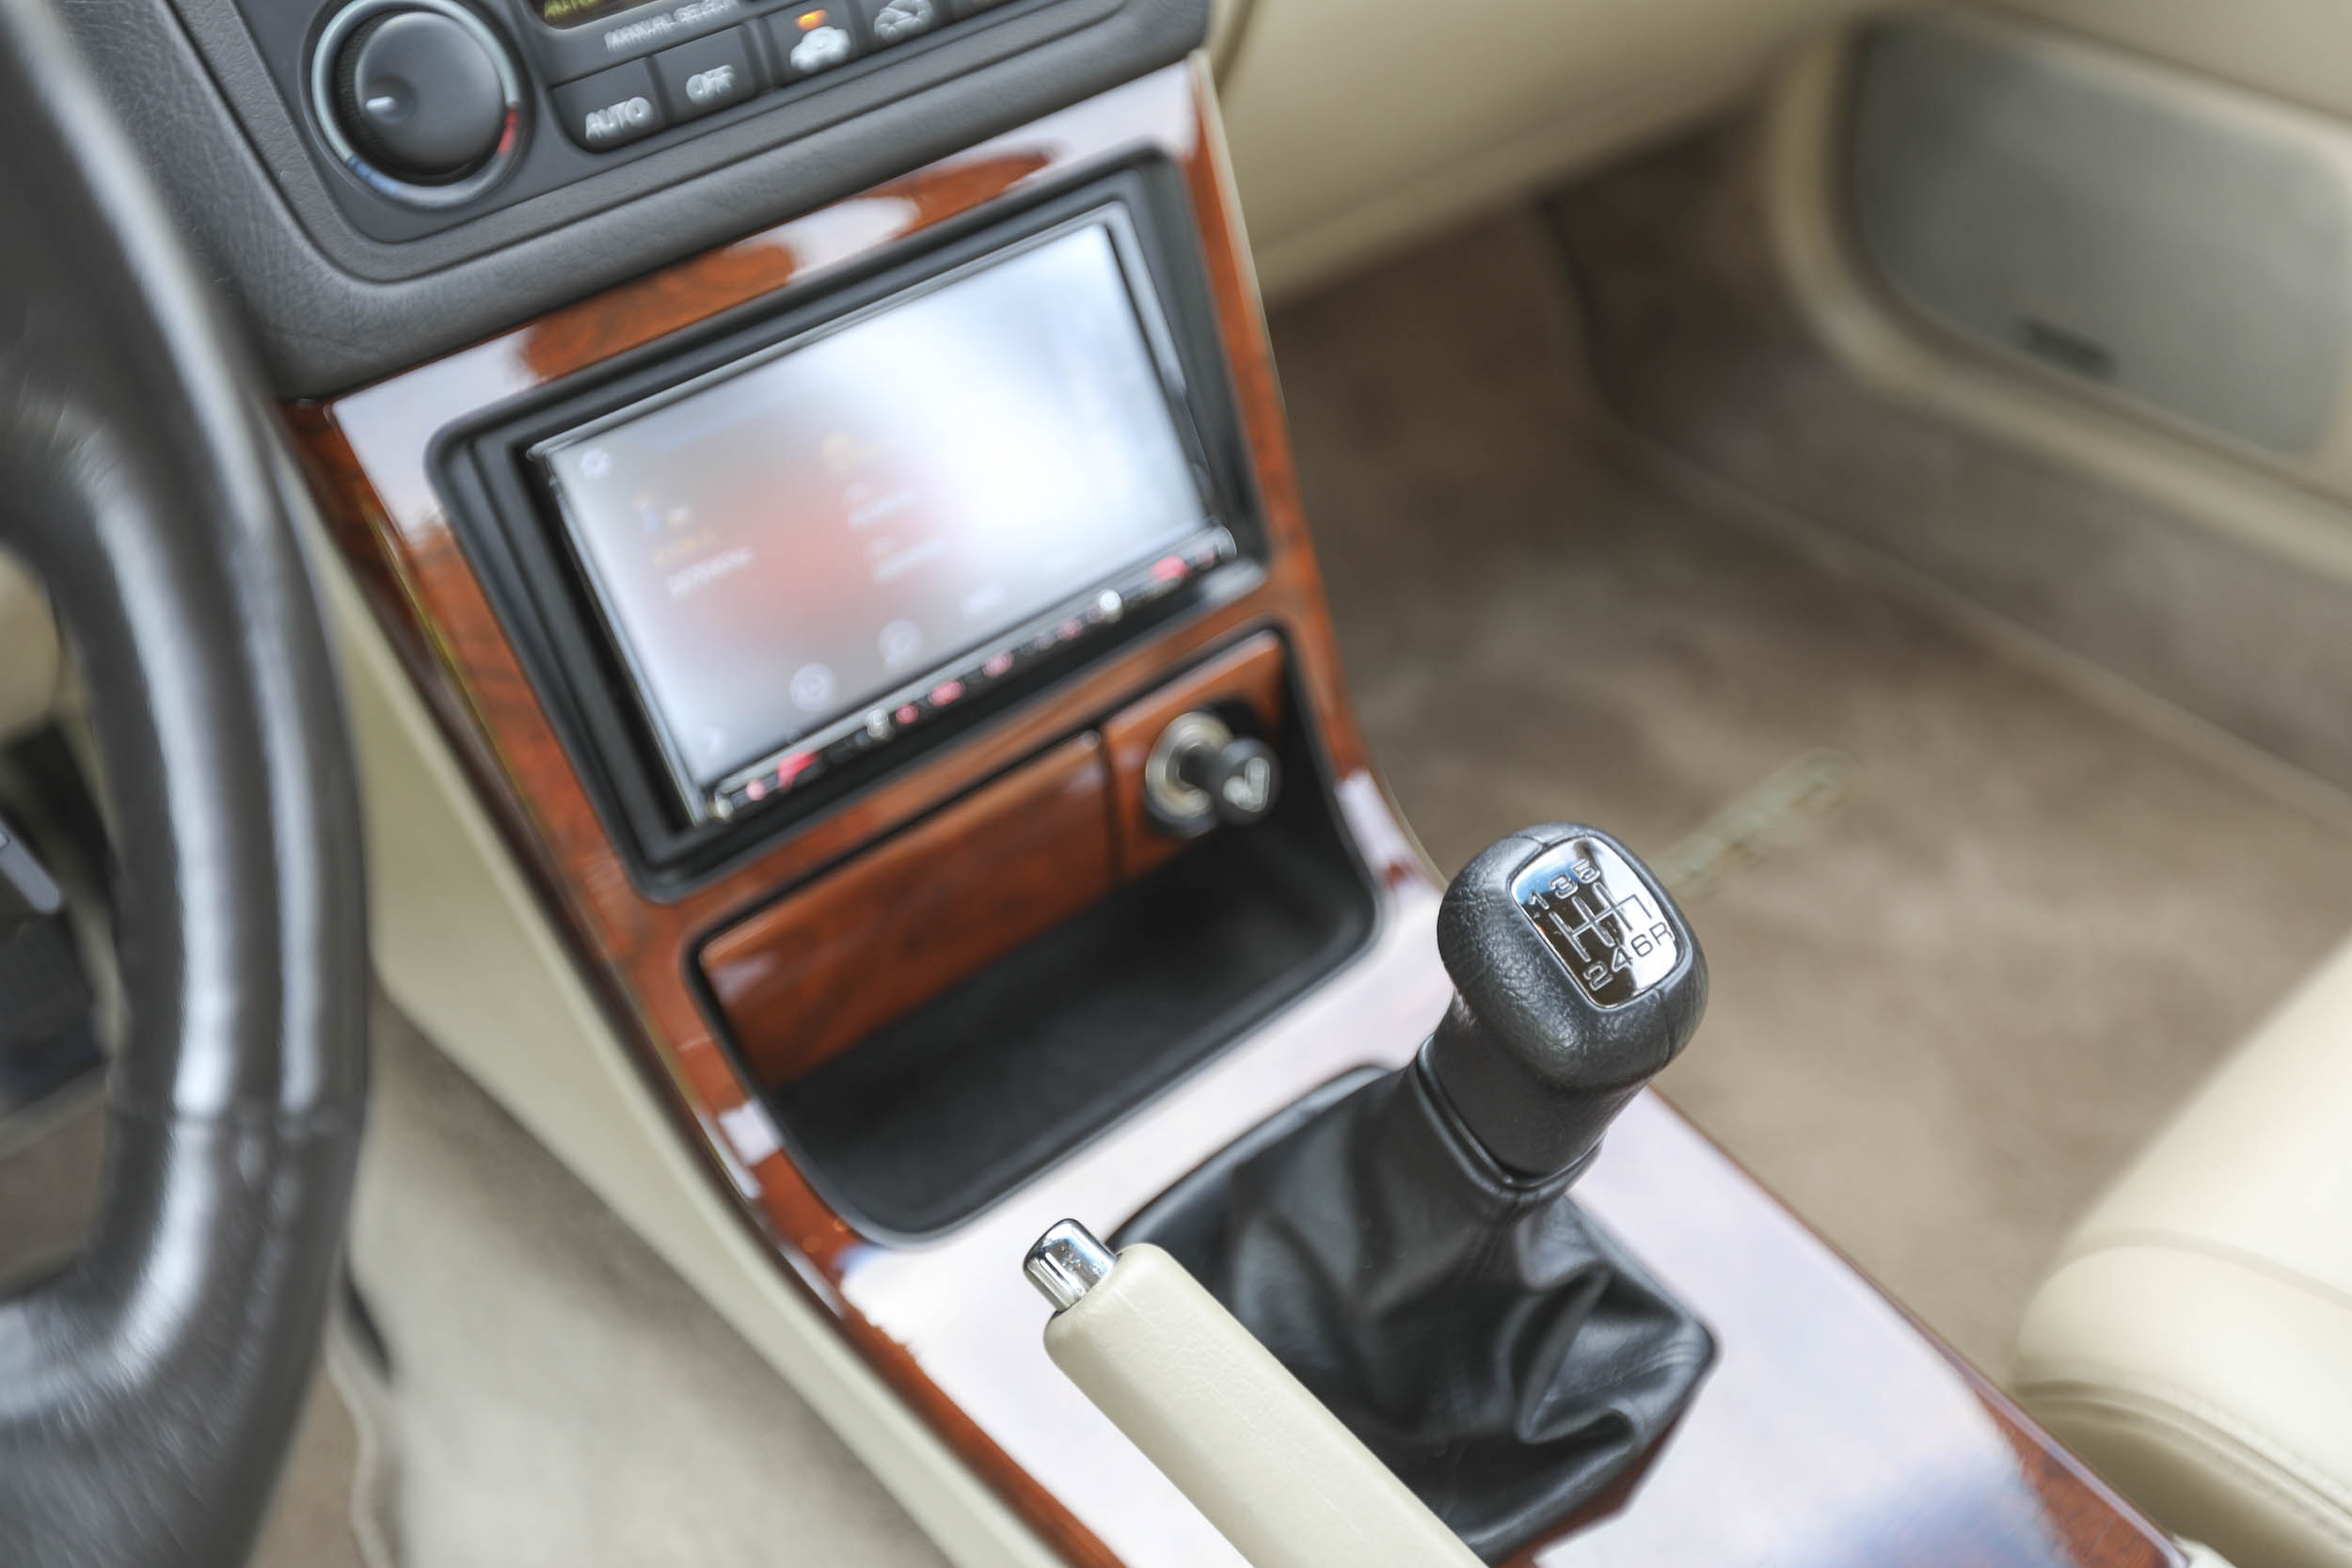 1994 Acura Legend Coupe LS shifter knob